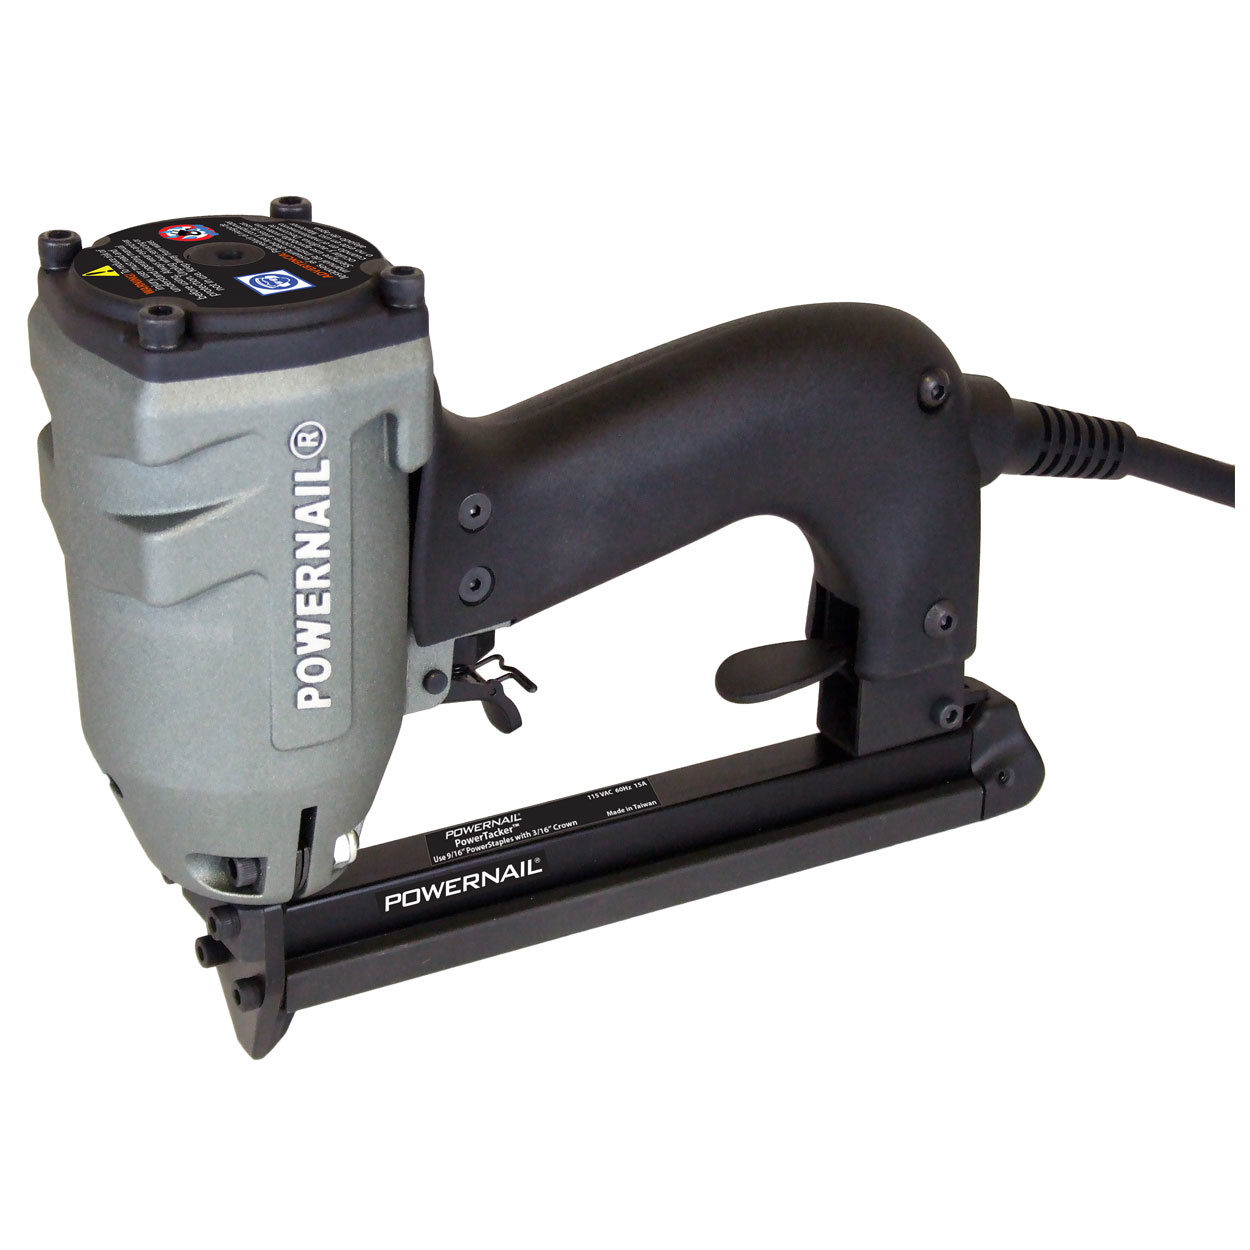 54E – Electric Carpet Stapler